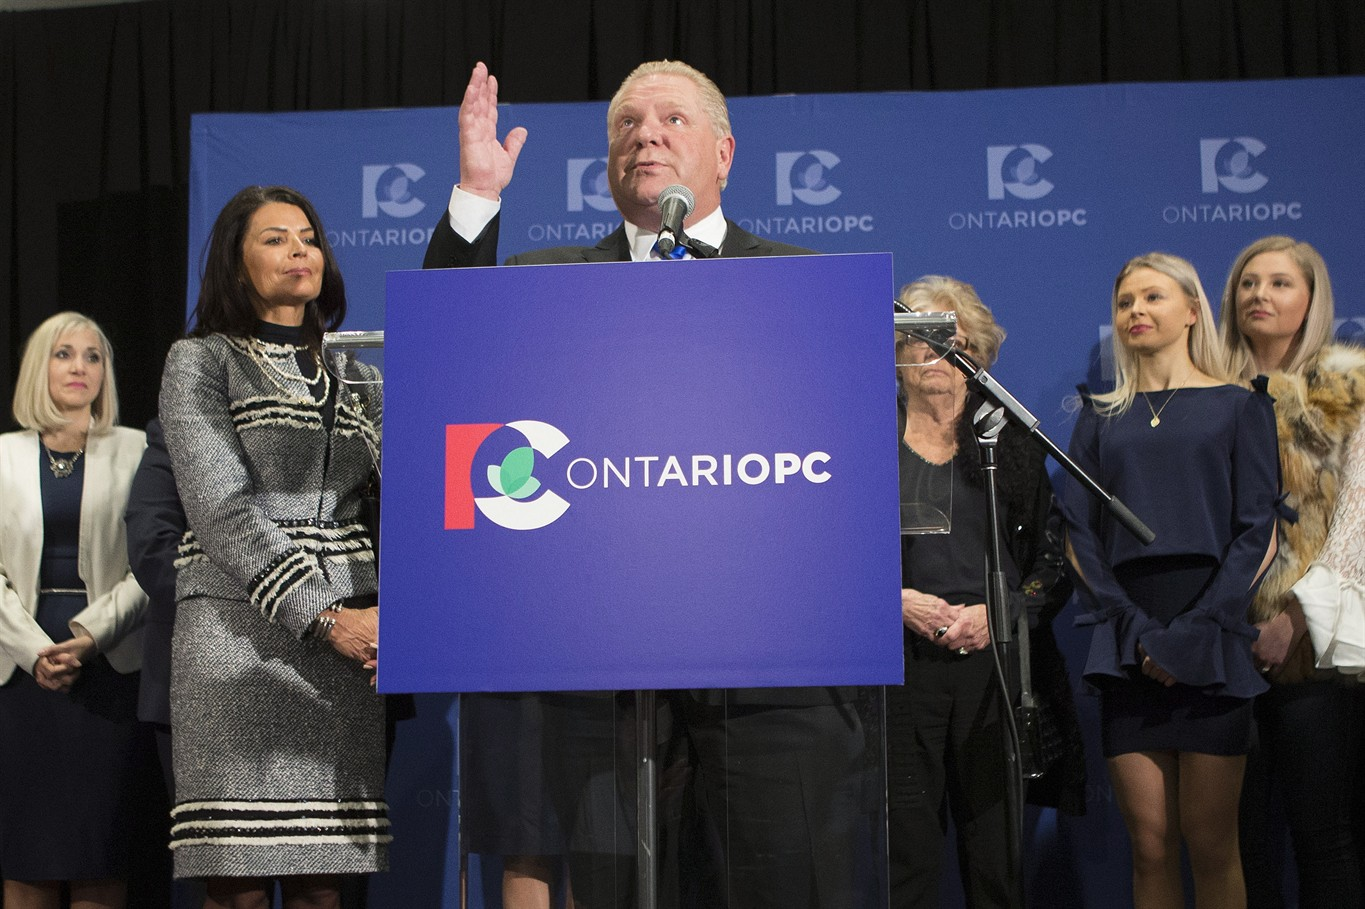 Ontario PC Party rally behind new leader